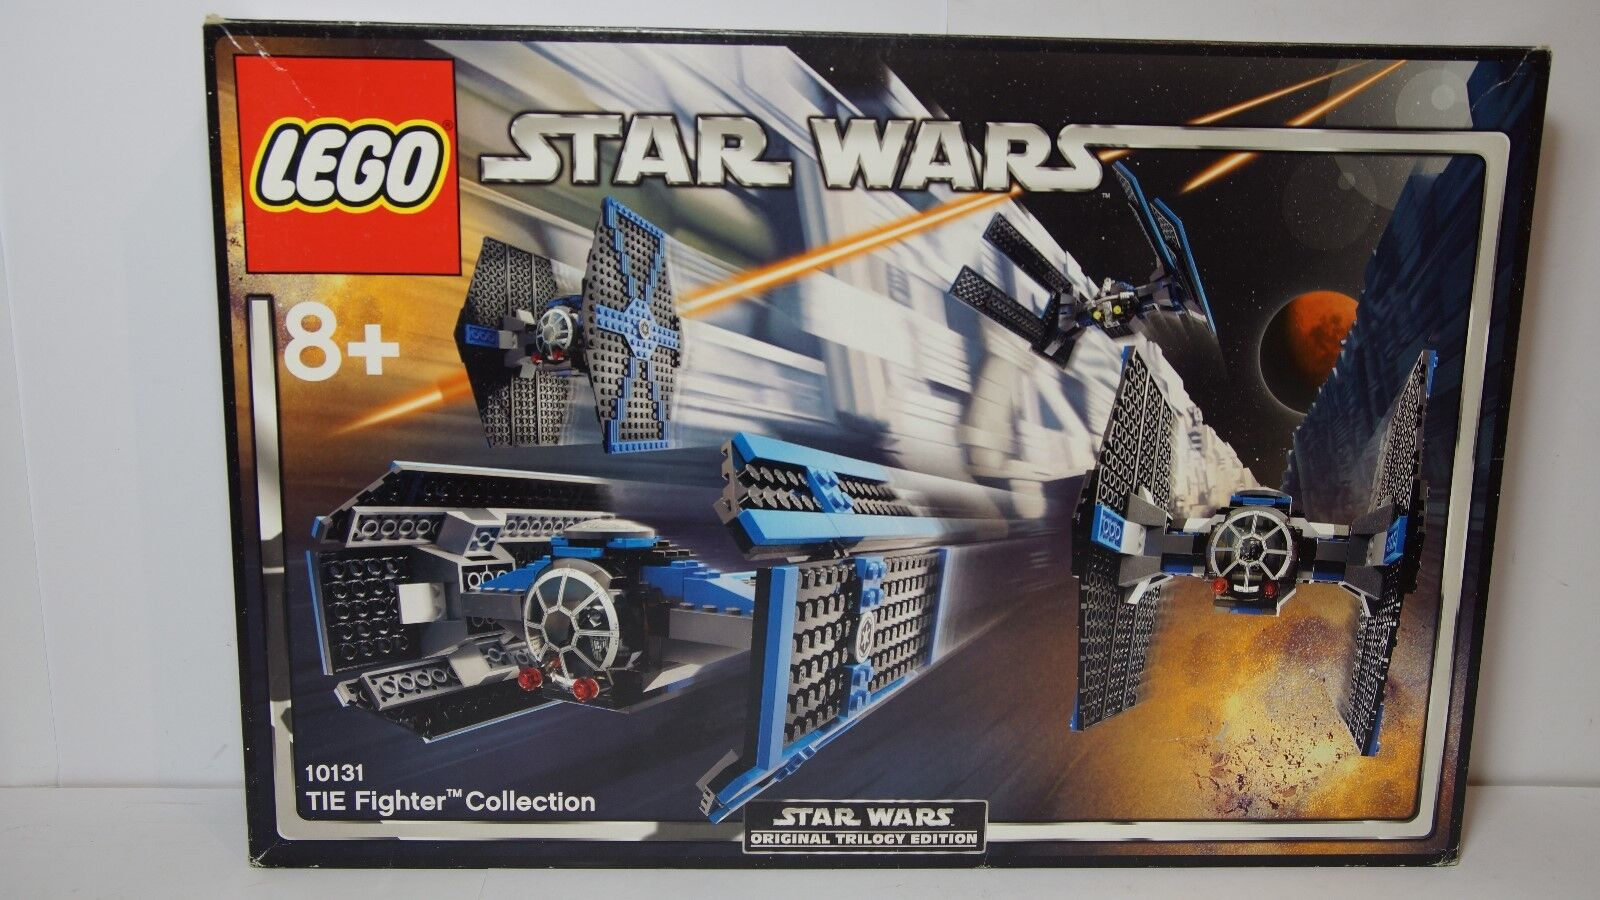 Lego 10131 - Star Wars - TIE Fighter Collection